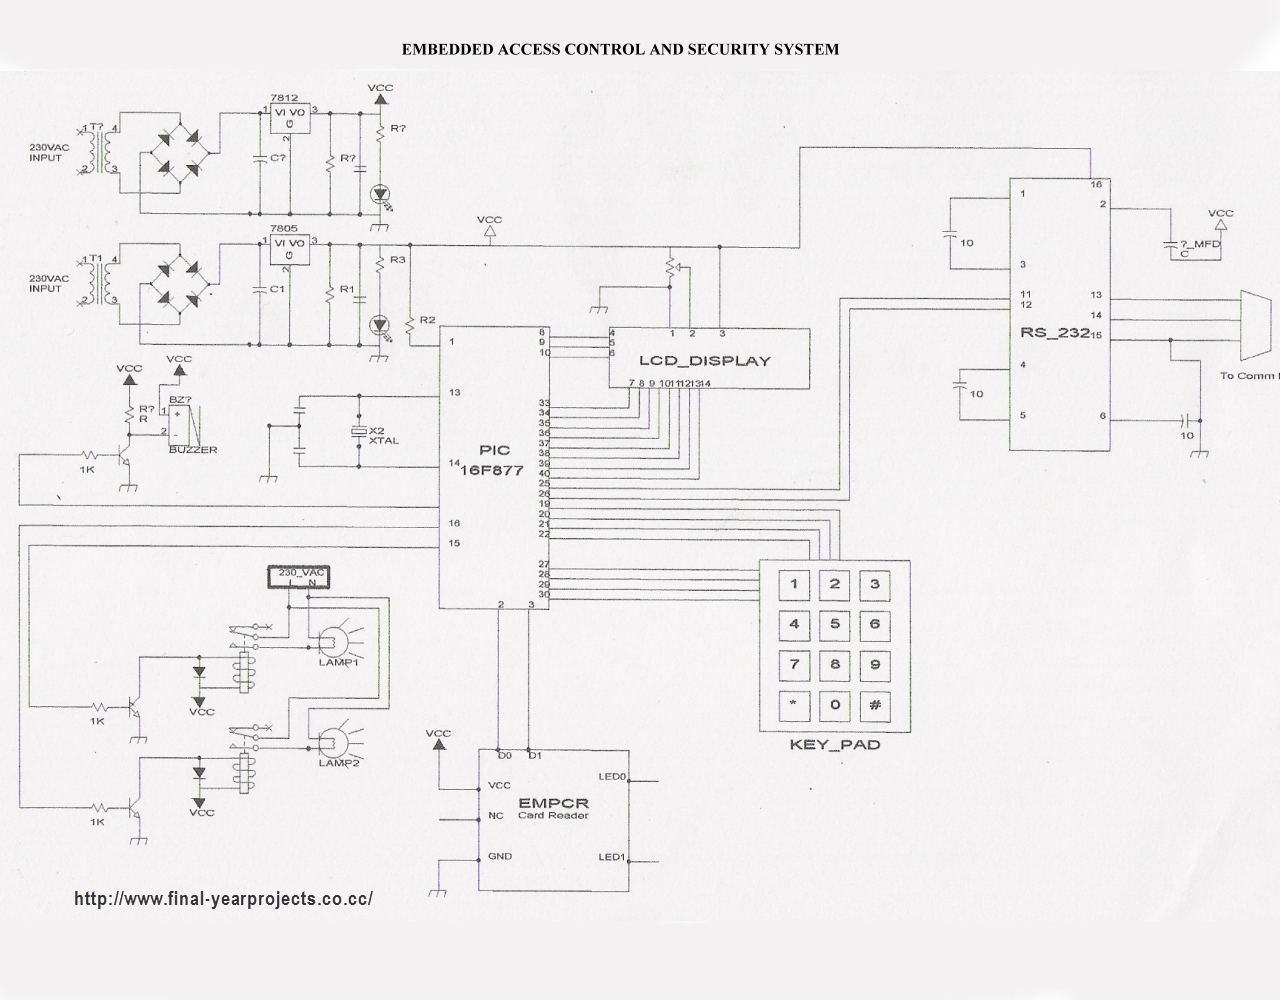 access control using rfid microcontroller project final year